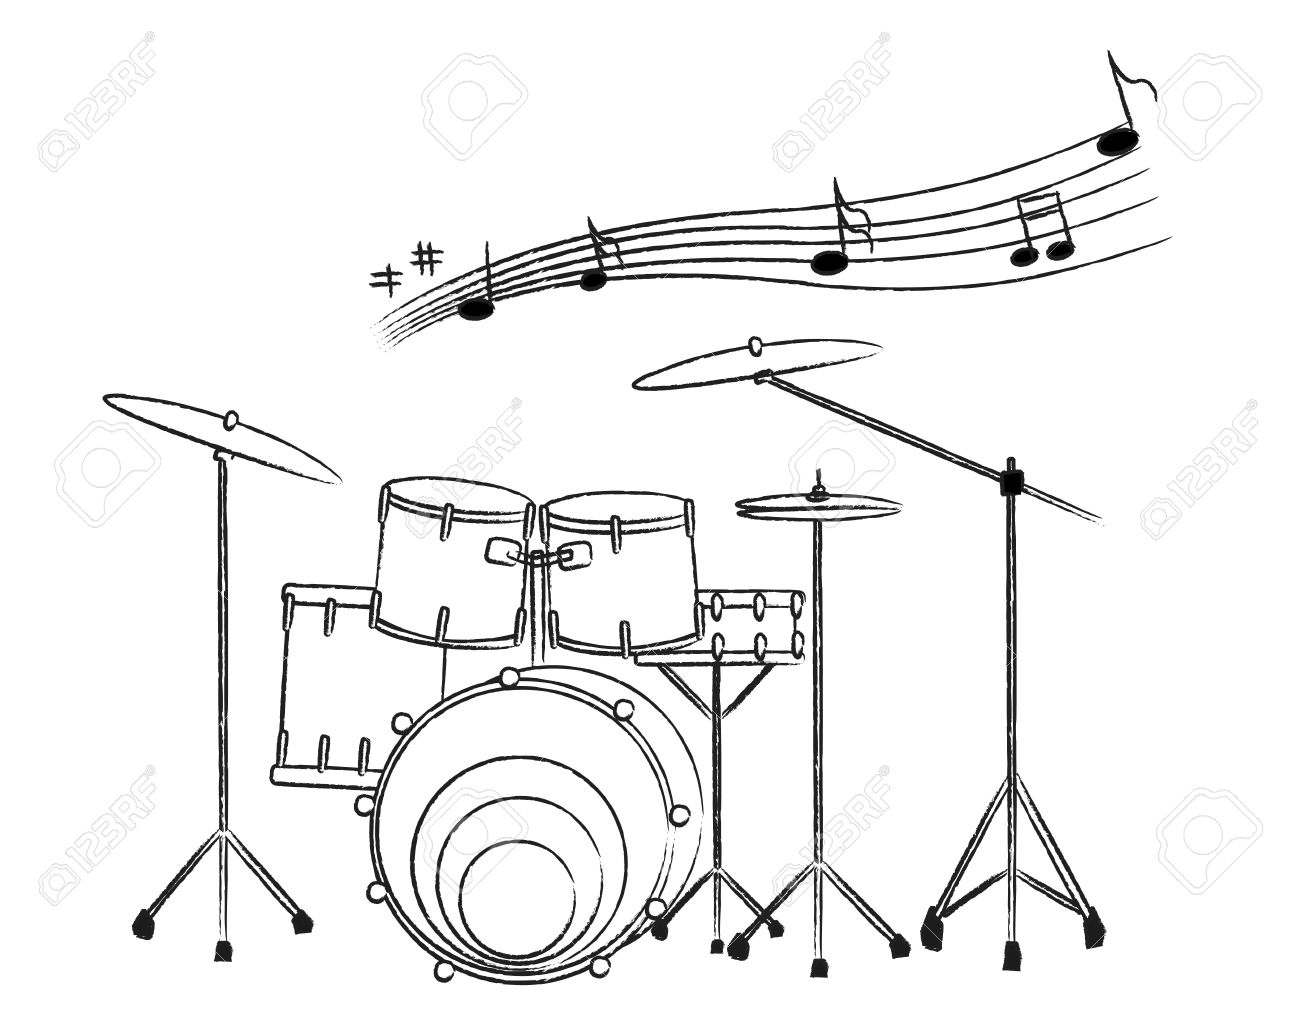 1300x1015 Drawing Of A Drum Set The Drum Set Drawing On The White Background